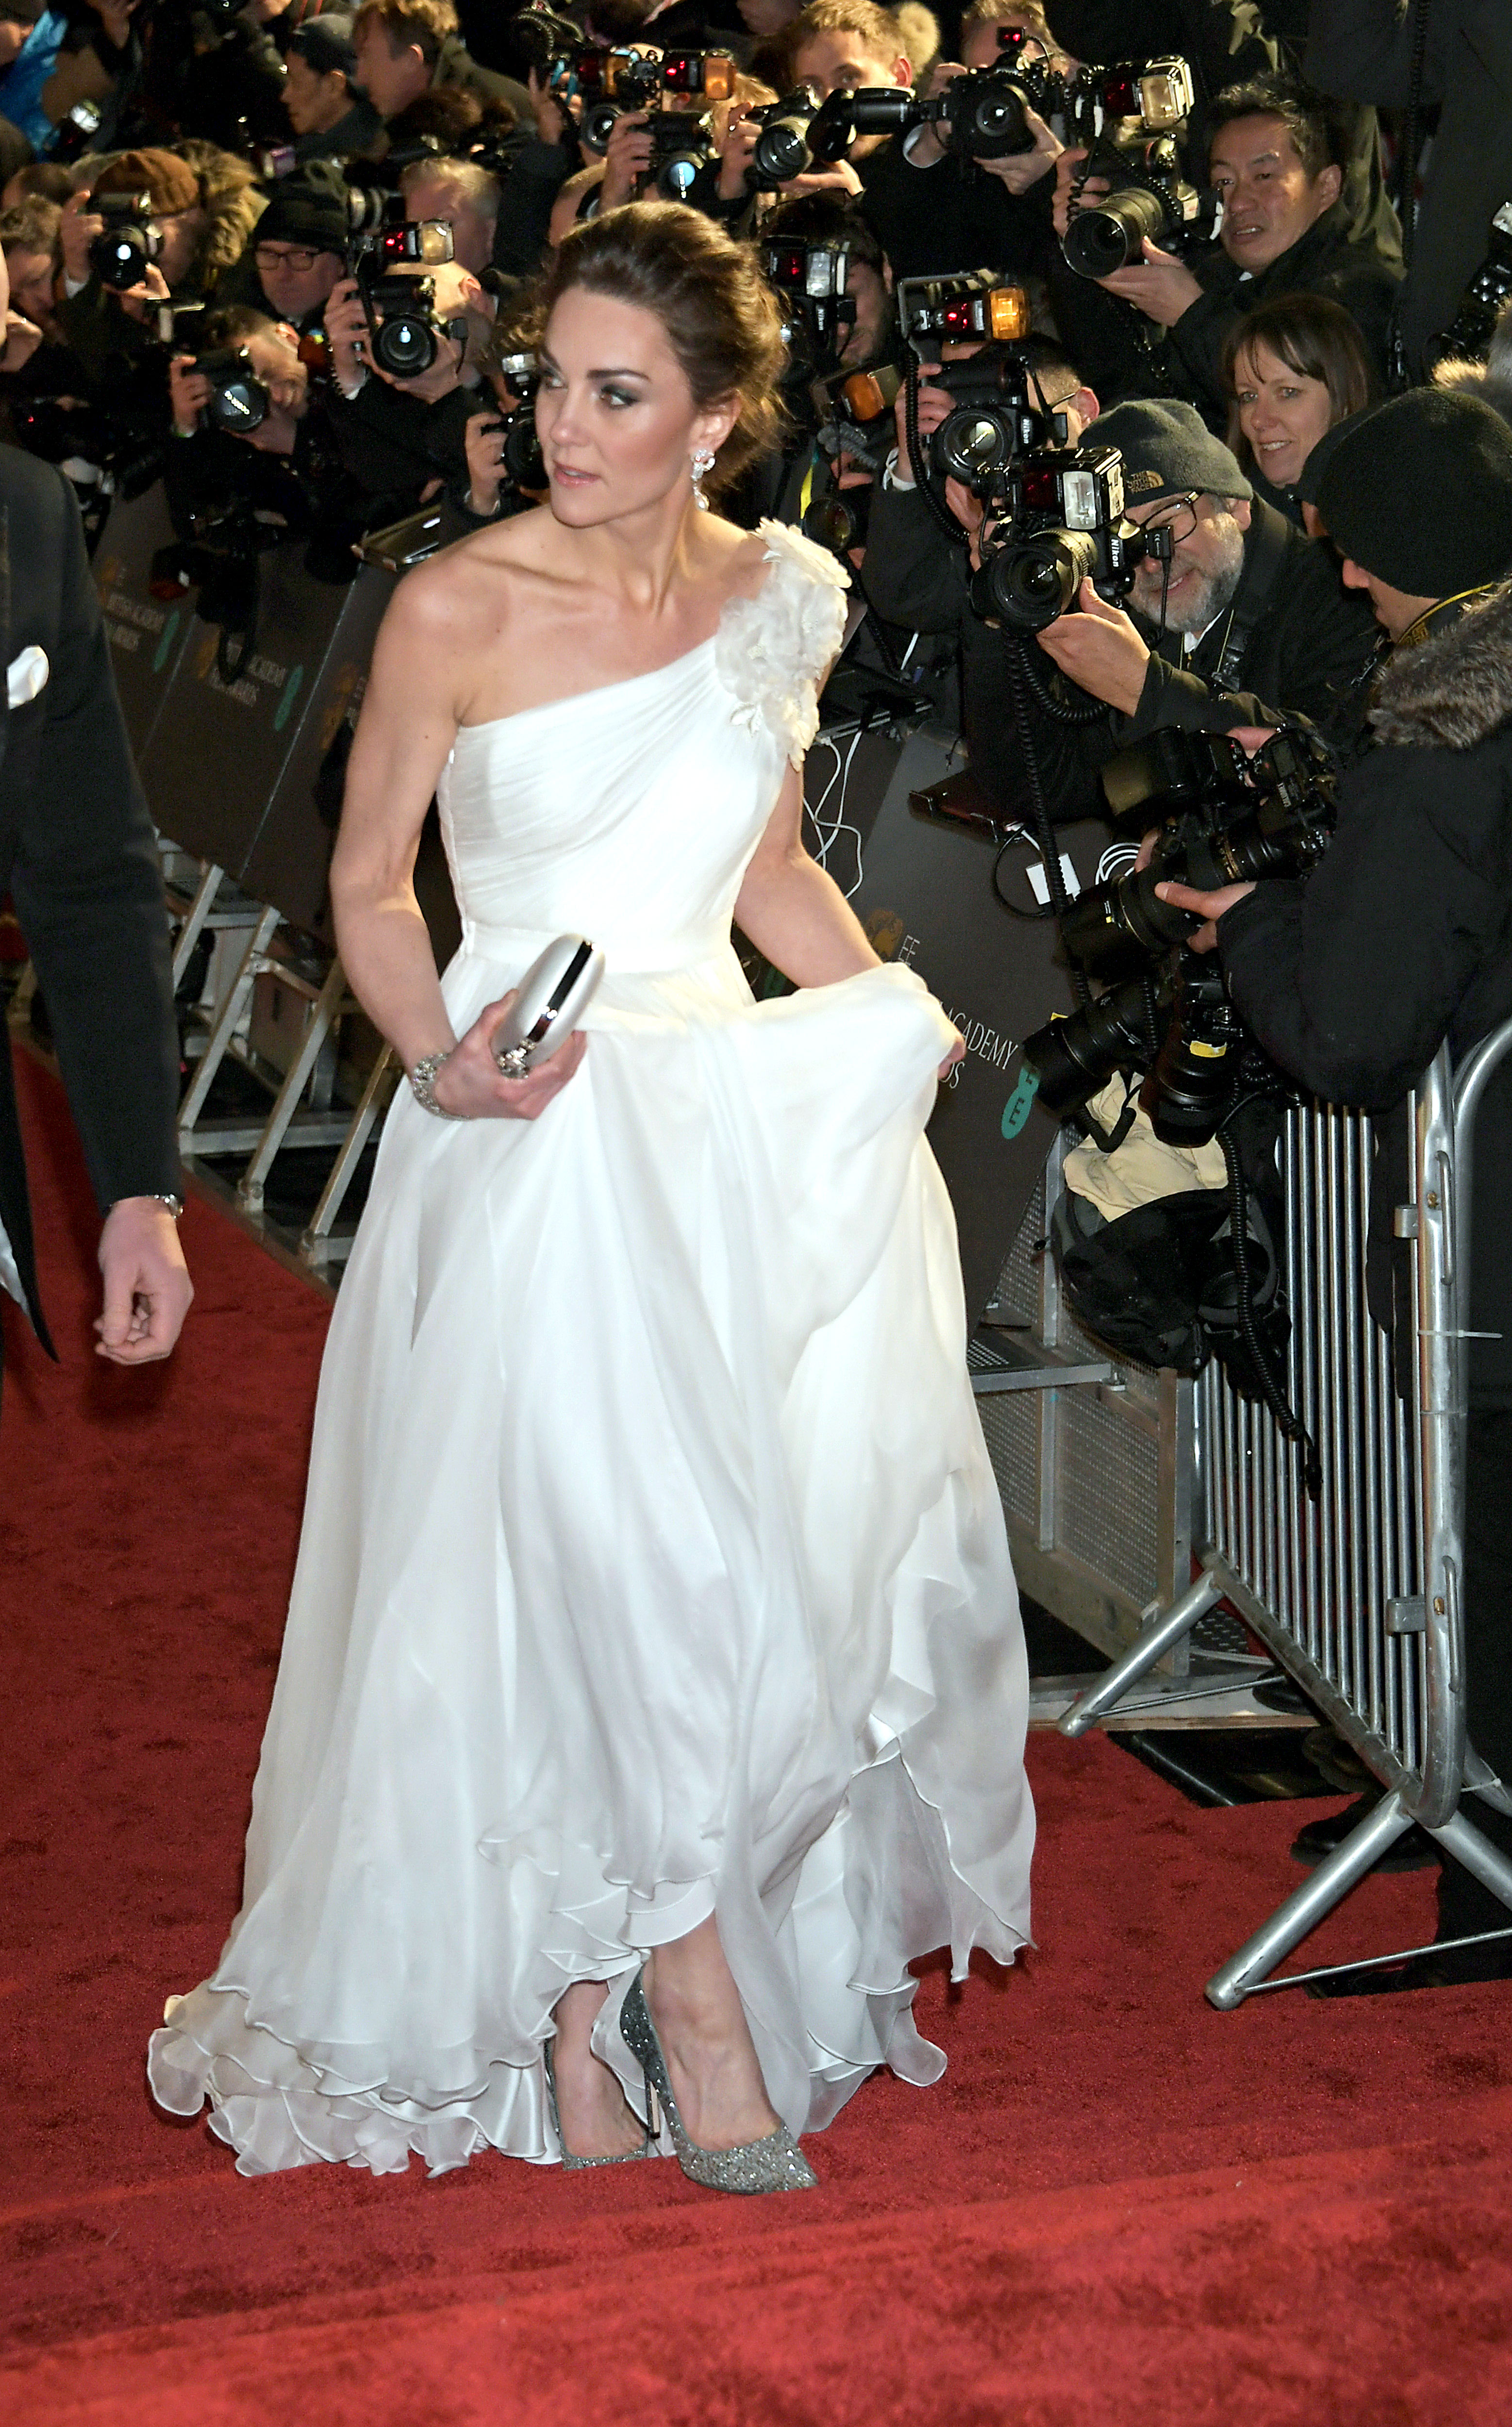 Kate Middleton Stuns at the BAFTAs - Kate's chiffon dress is by Alexander McQueen. She teamed it with Jimmy Choo Romy in Viola Glitter heels and a silver and white clutch.